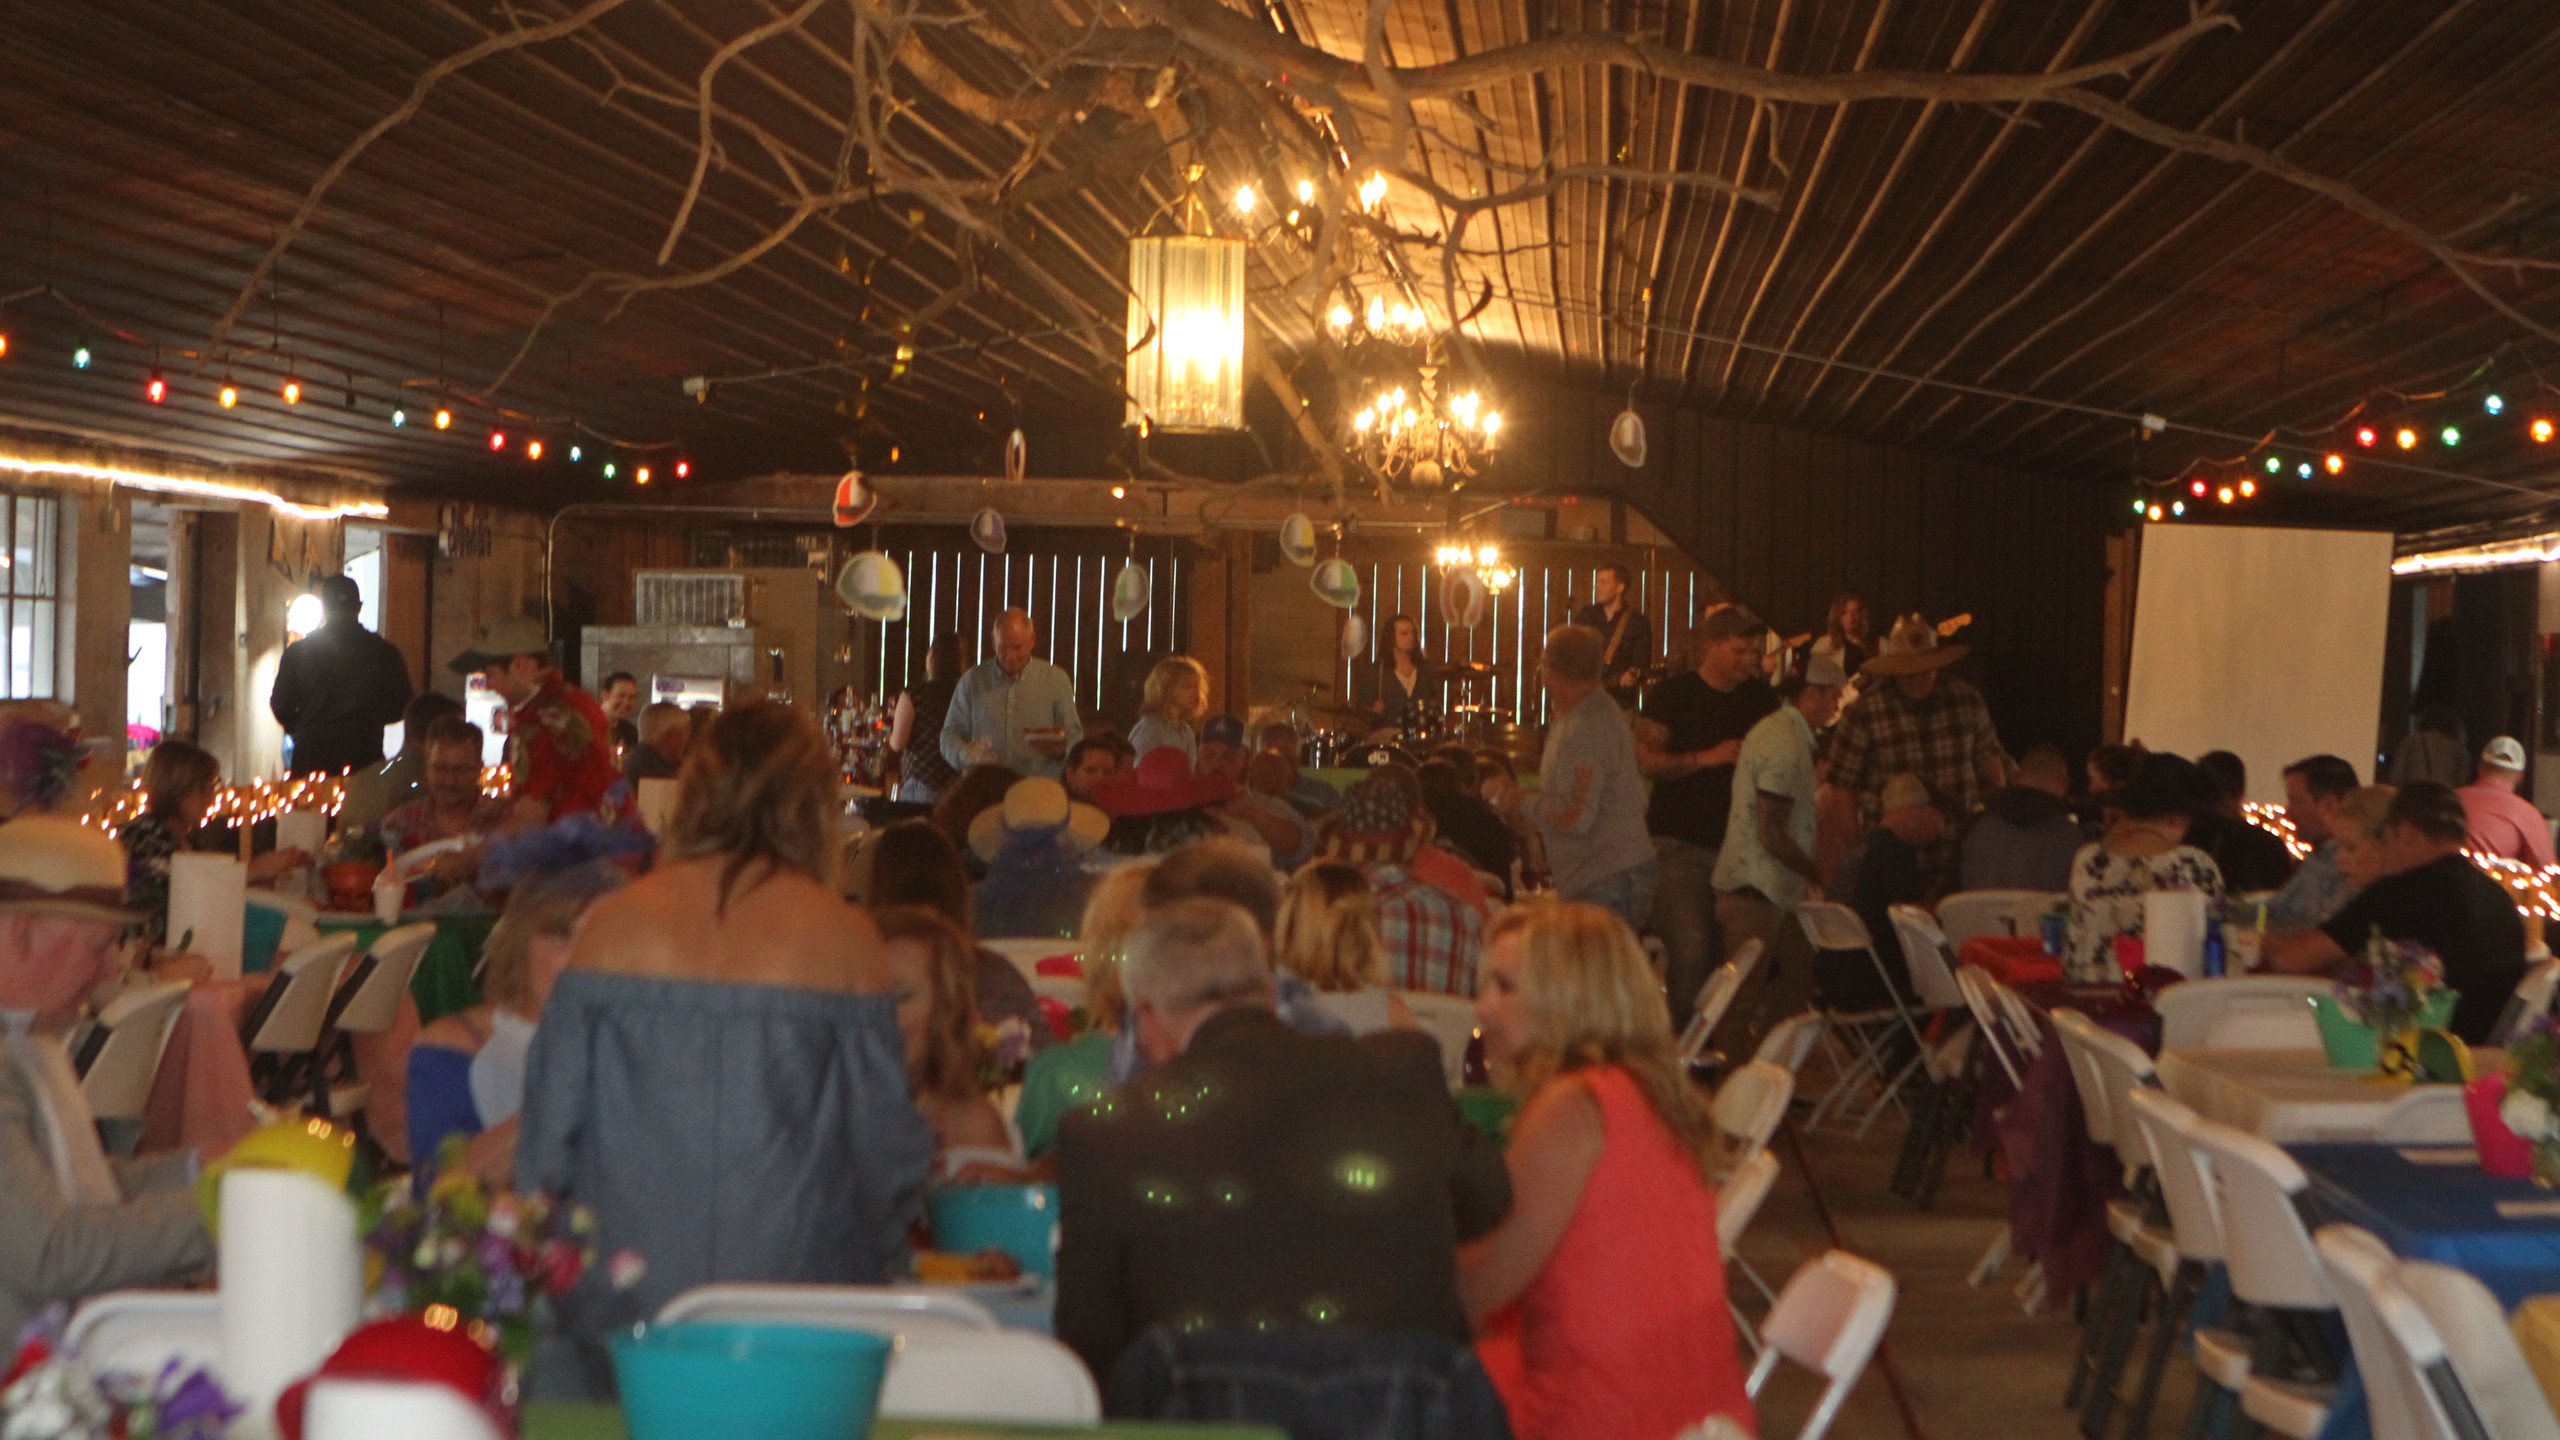 MB Roland's Kentucky Derby Party & Crawfish Boil